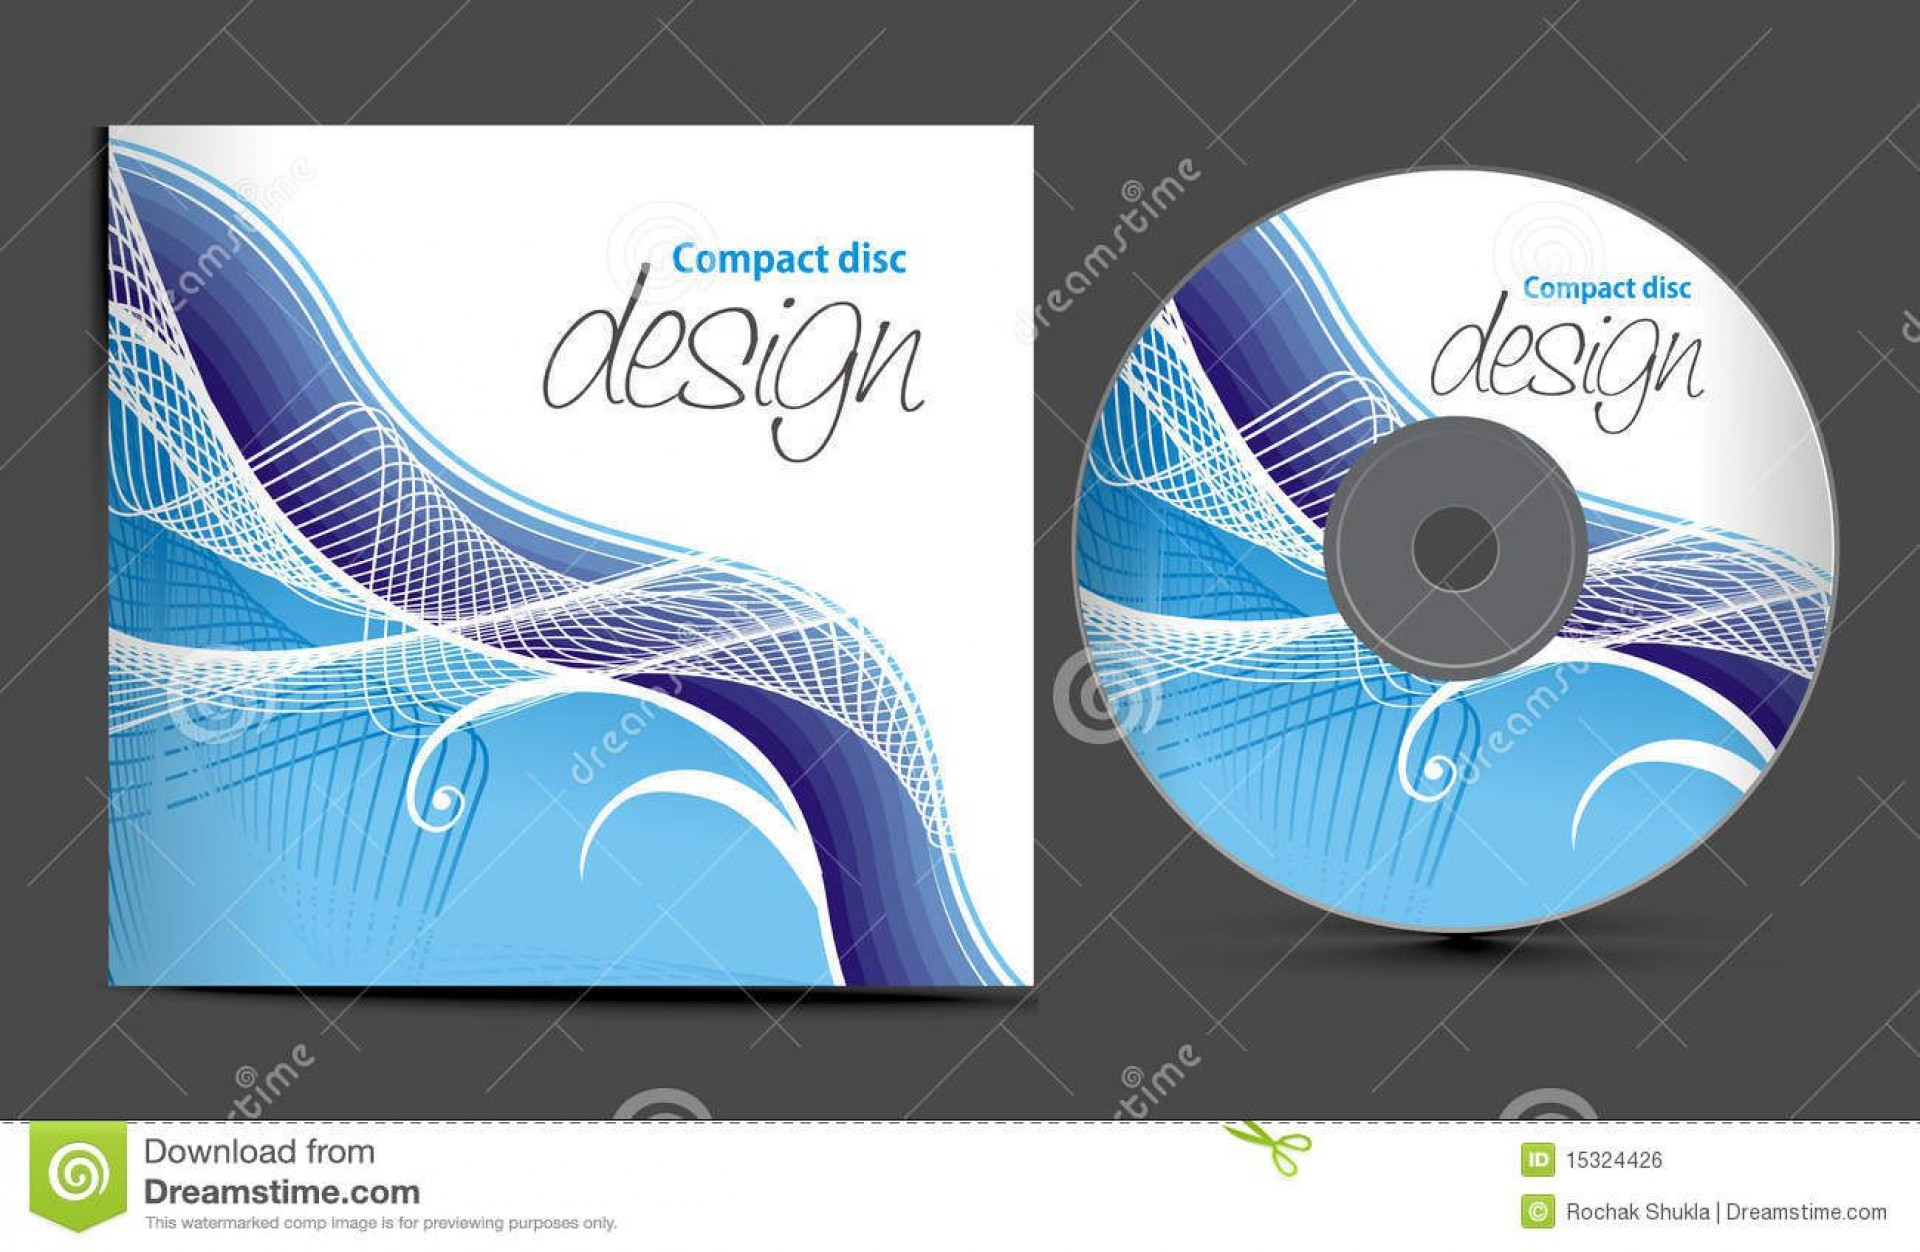 004 Breathtaking Music Cd Cover Design Template Free Download Concept 1920